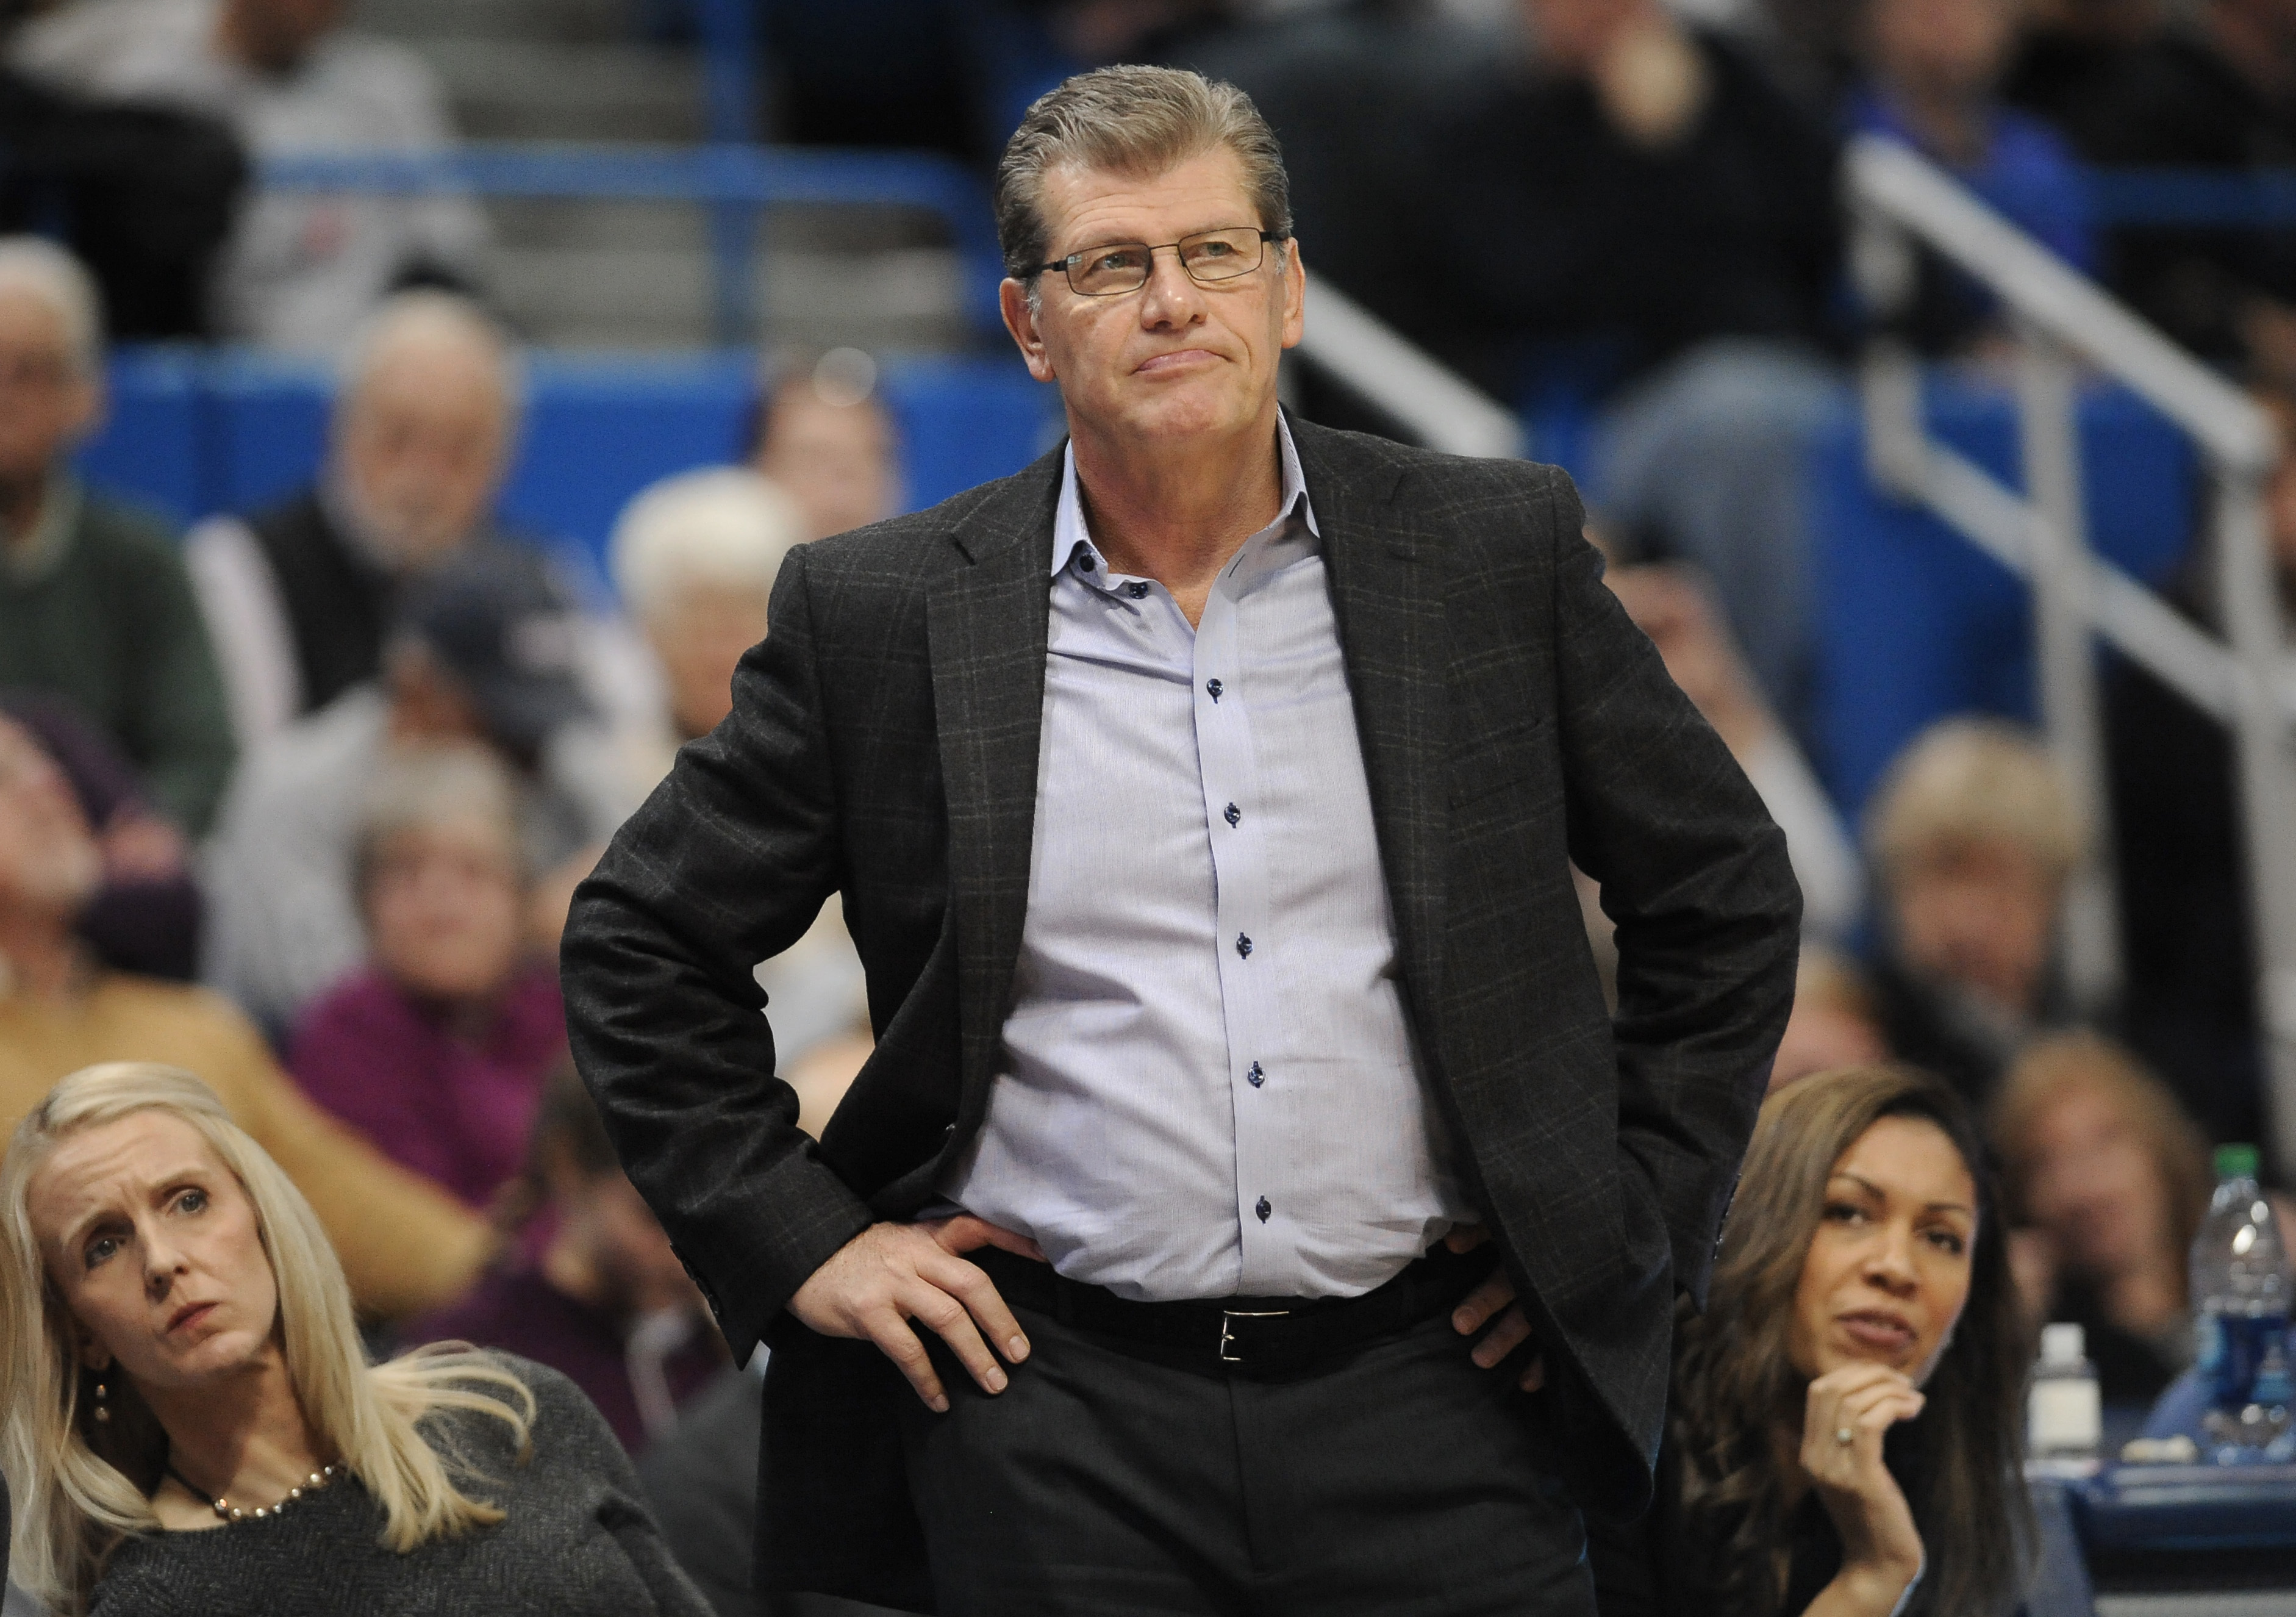 Connecticut head coach Geno Auriemma watches play in the second half of an NCAA college basketball game against Chattanooga, Tuesday, Nov. 29, 2016, in Hartford, Conn. (AP Photo/Jessica Hill)